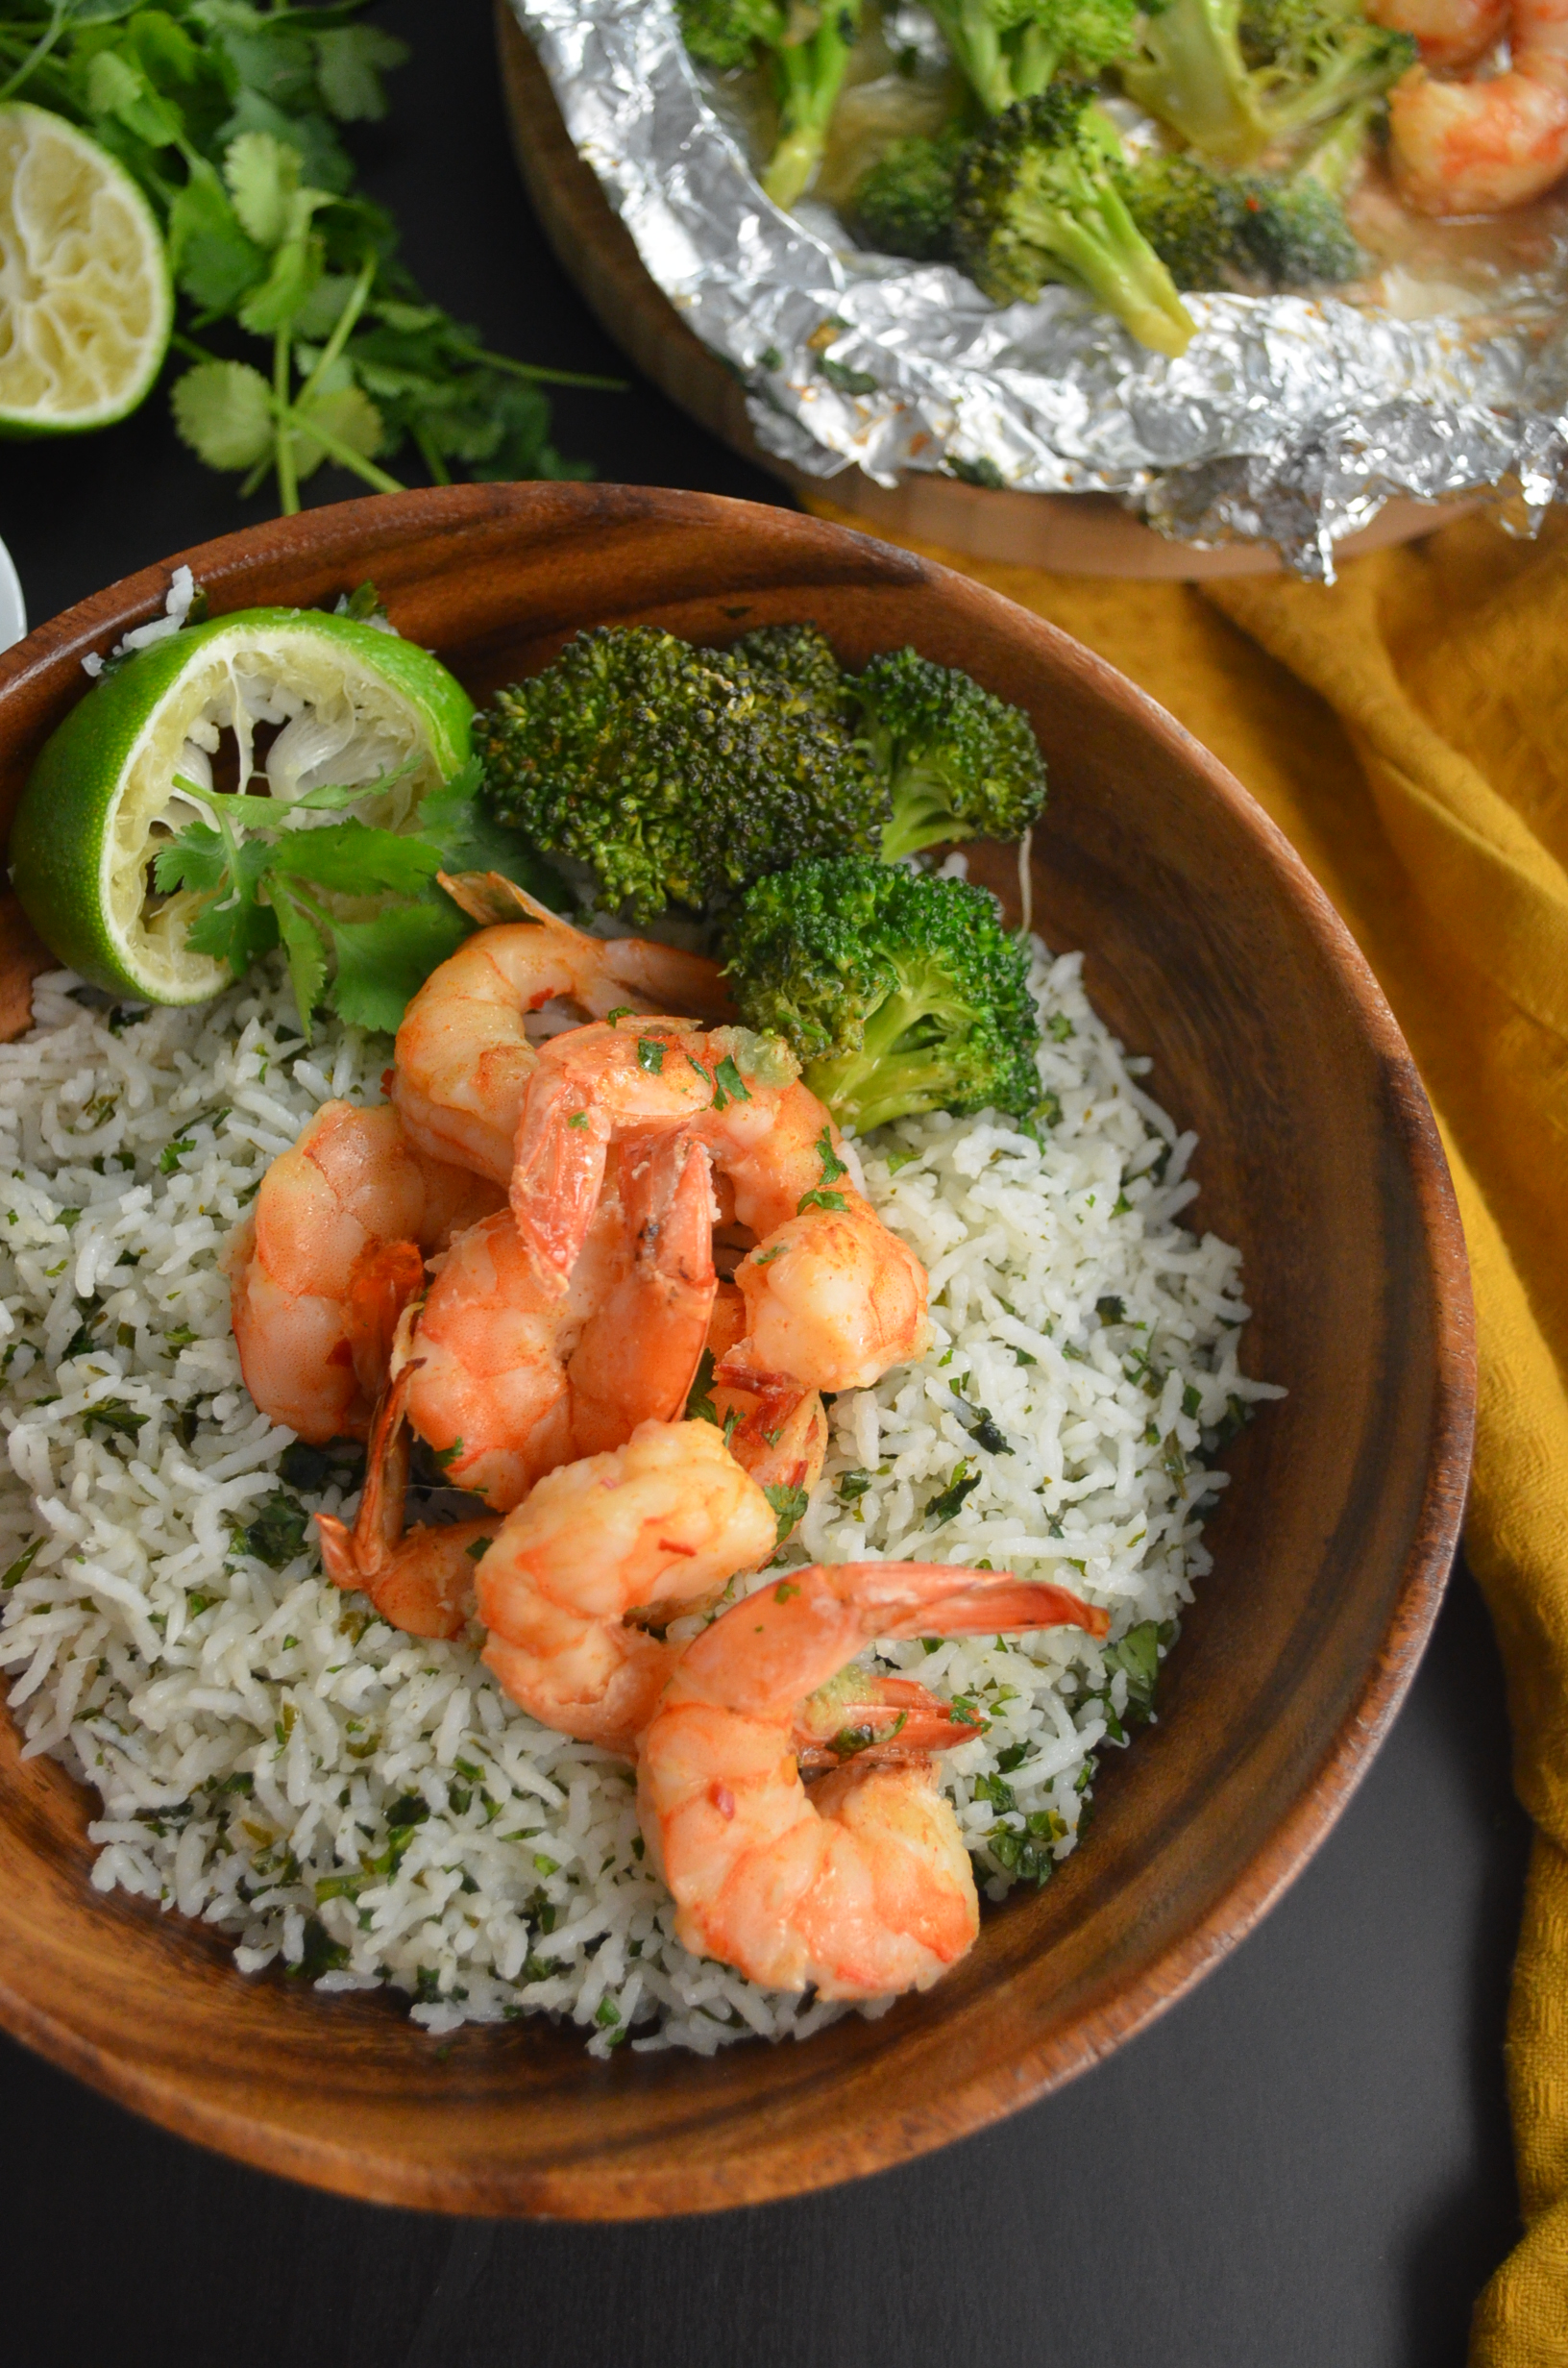 Shrimp and Broccoli Foil Pack